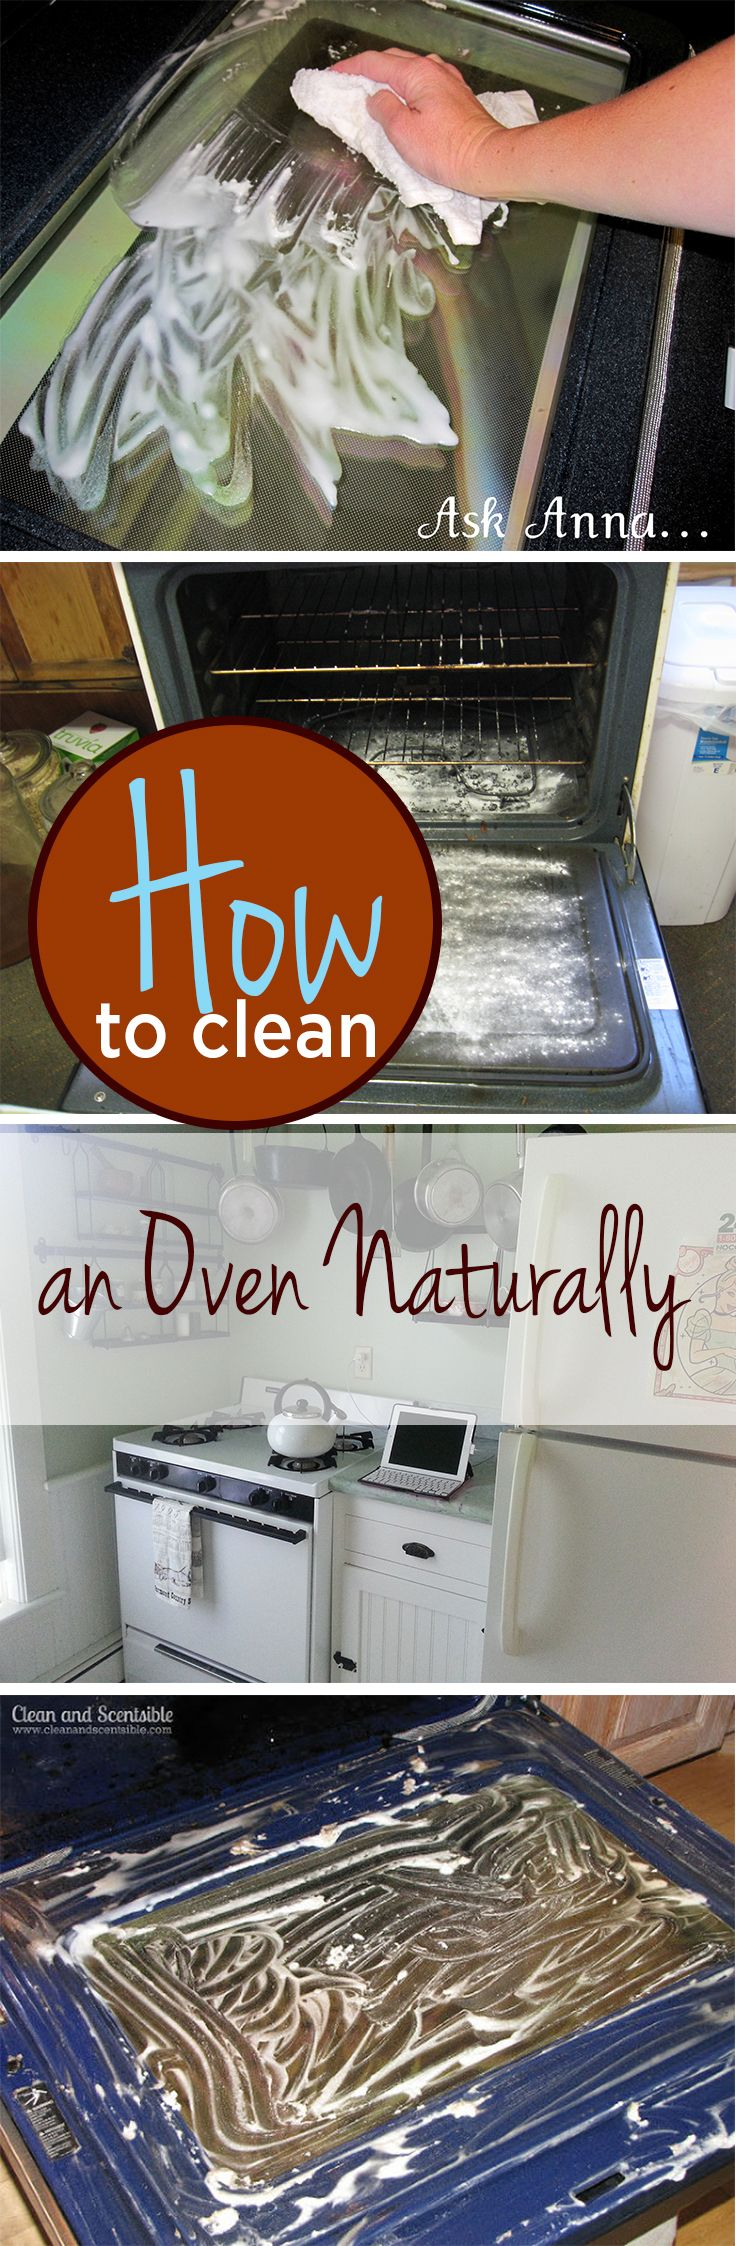 how to clean oven naturally way